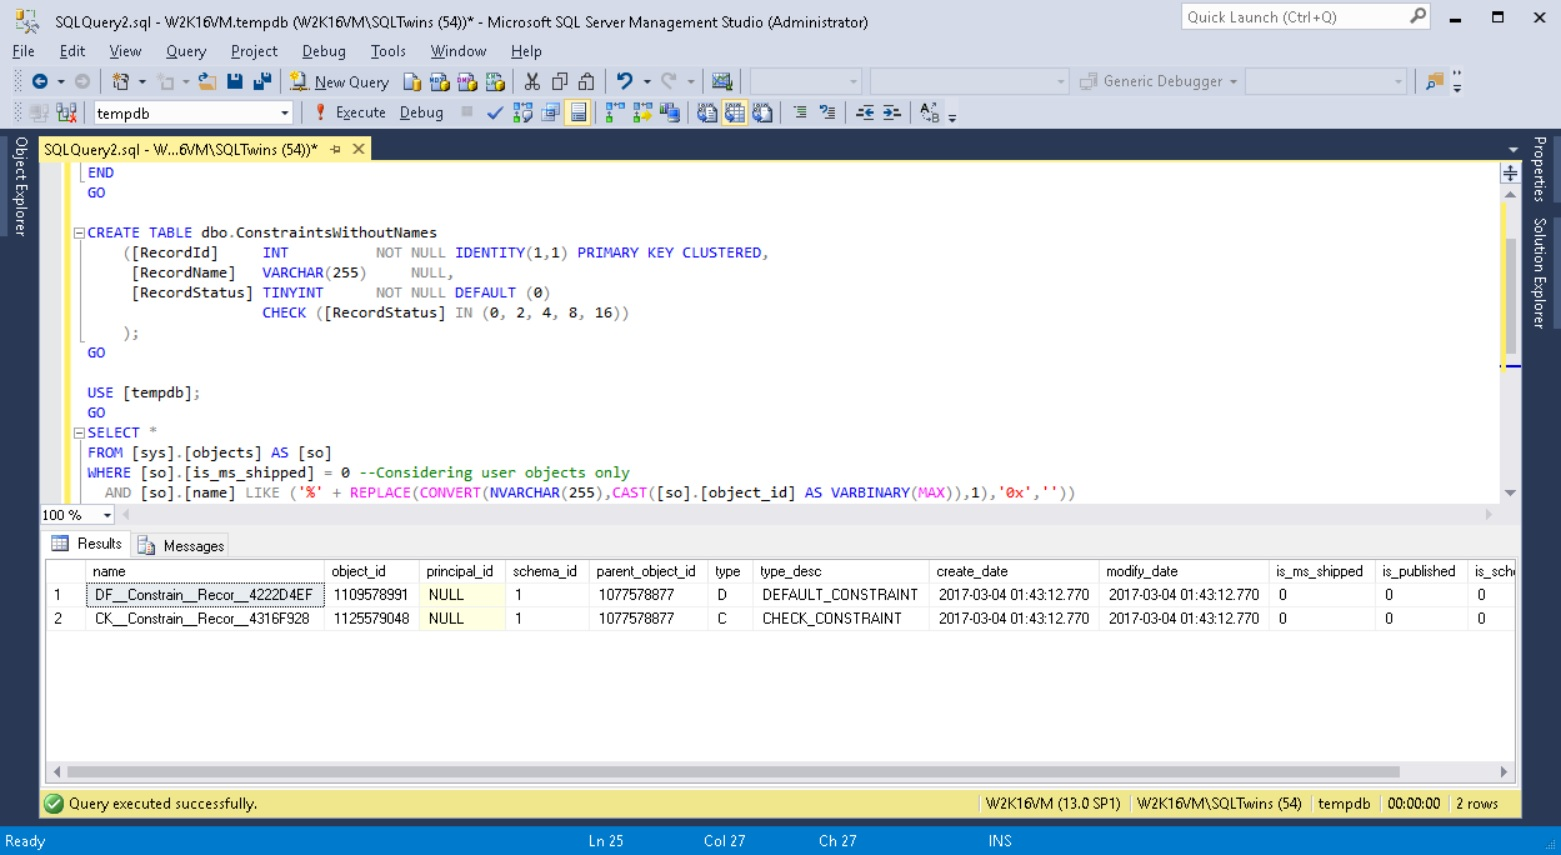 Screenshots showing that objects have been given default constraint names by SQL Server in case a name was not supplied by the user